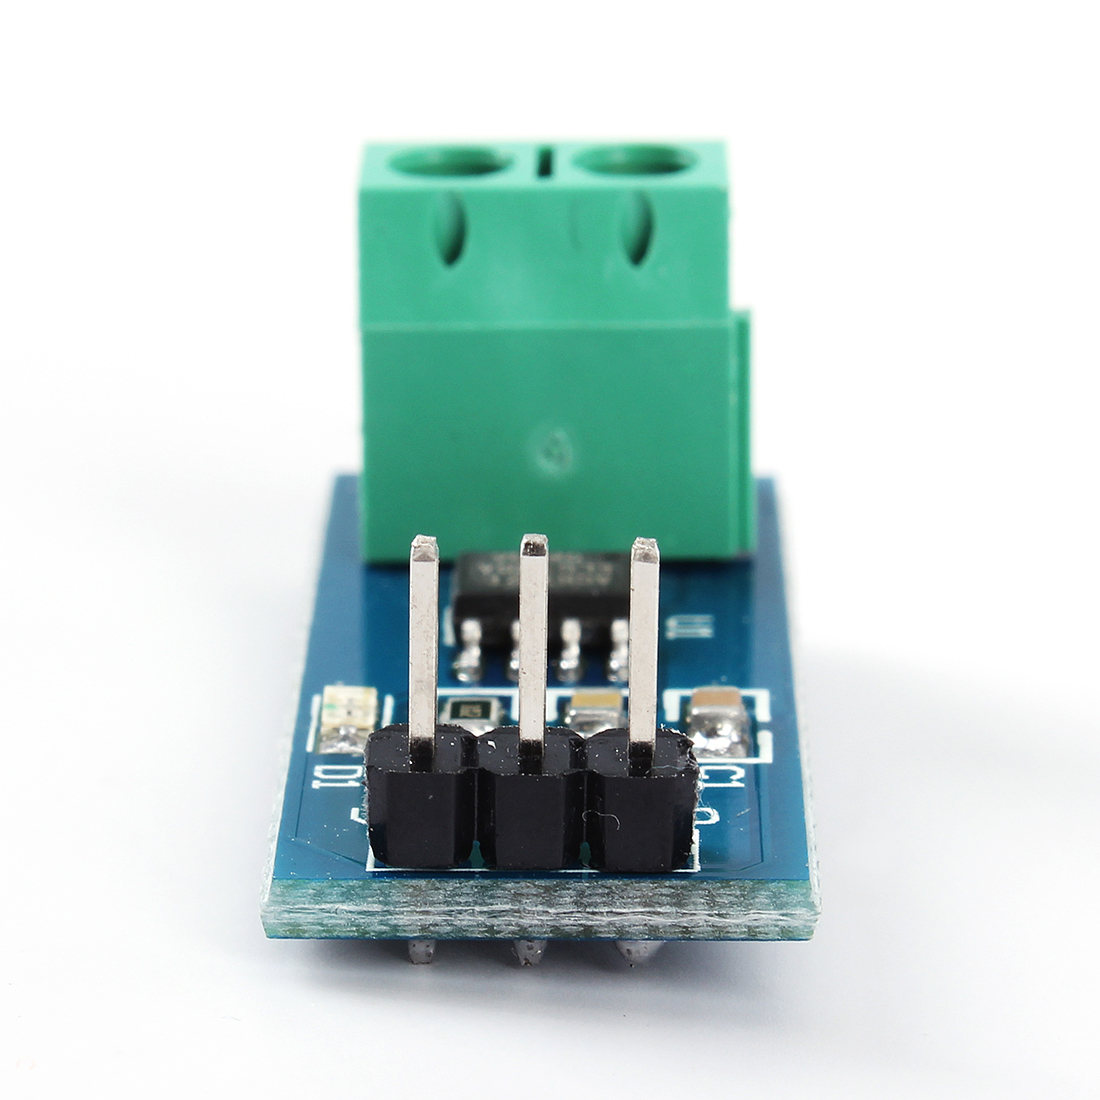 5V 30A ACS712 Range Current Sensor Module Board For Arduino